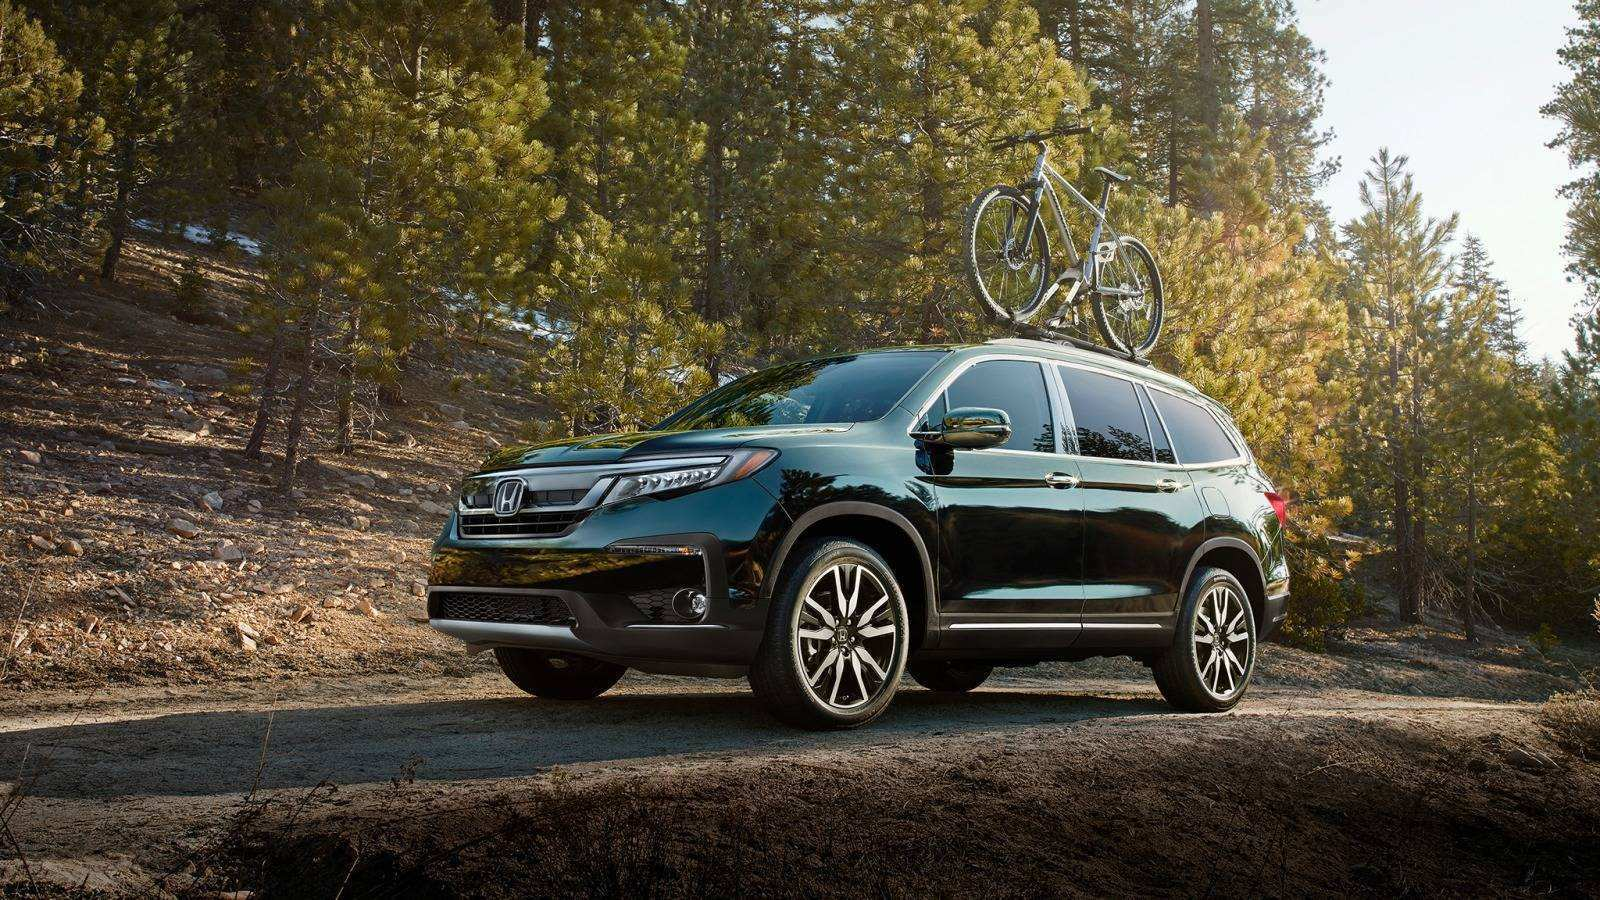 43 All New 2019 Honda Pilot Review Specs and Review with 2019 Honda Pilot Review